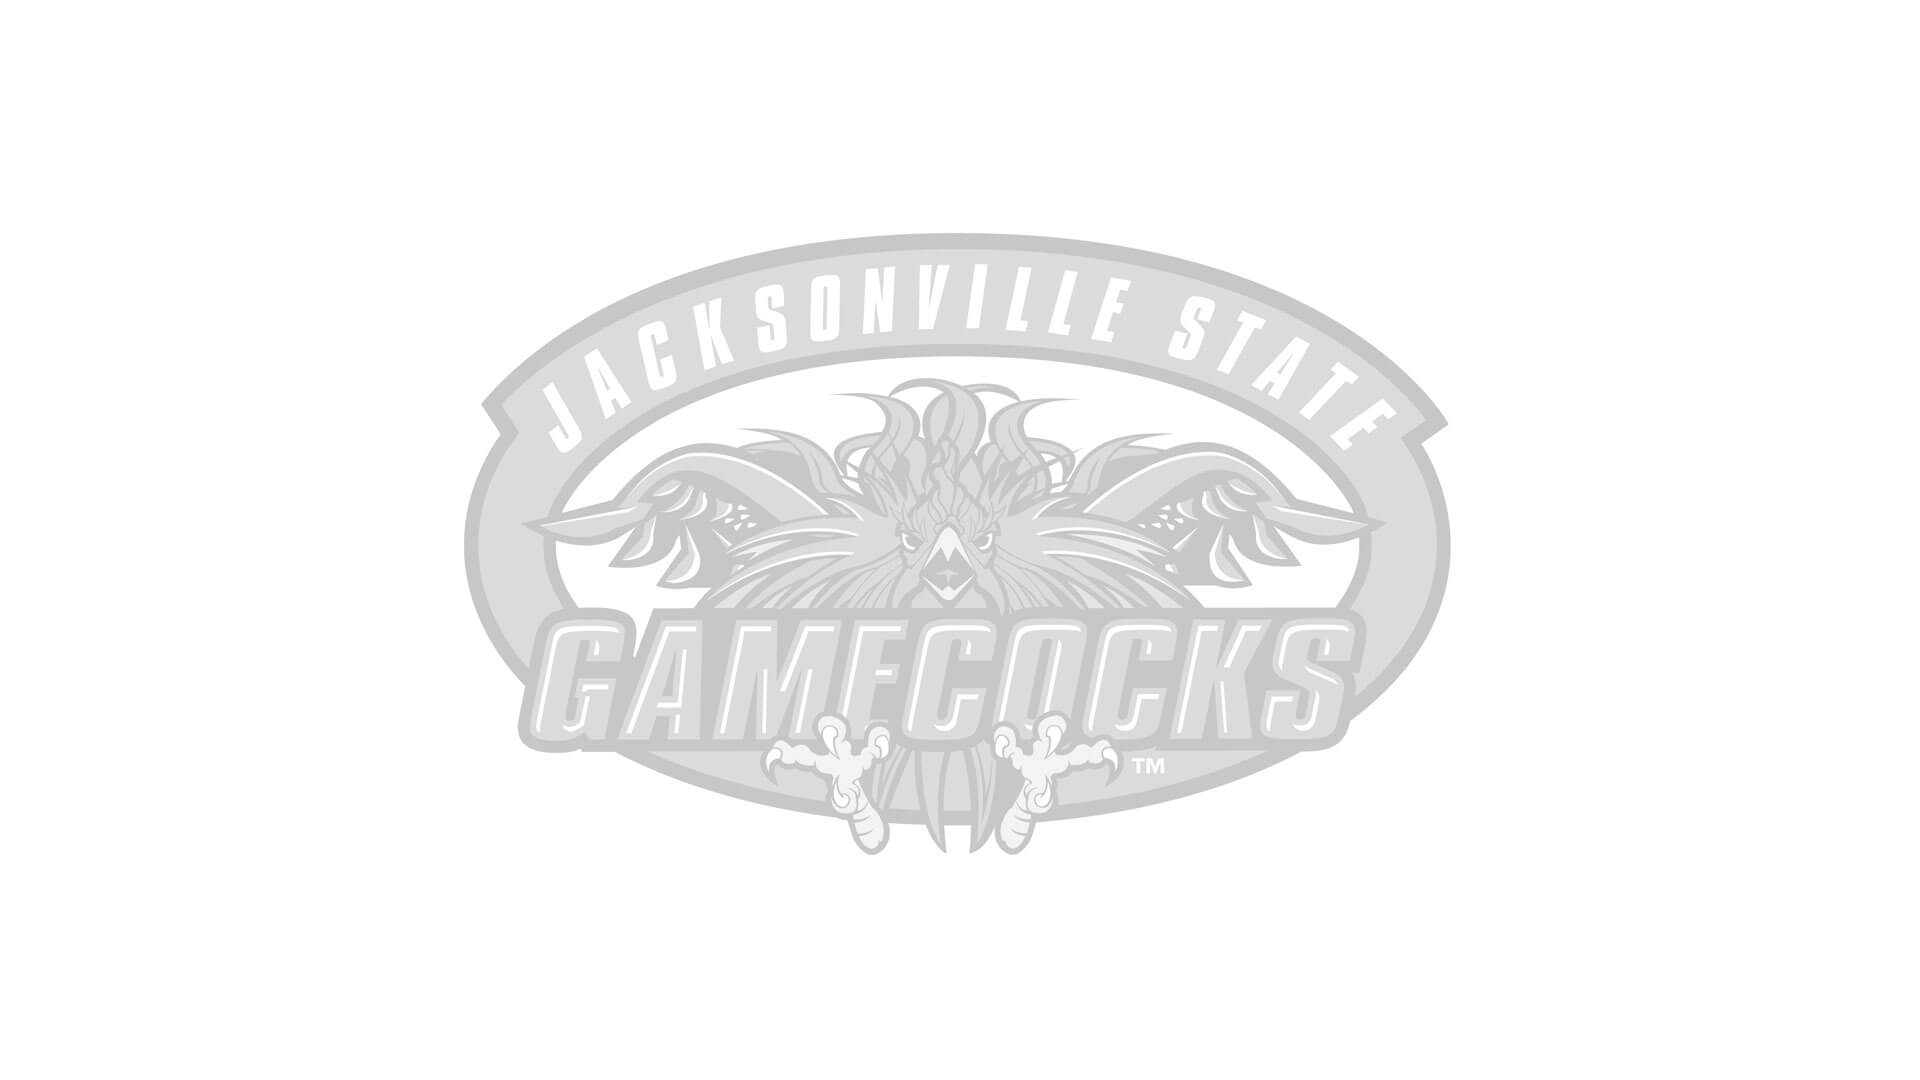 Jacksonville State University Athletics - Official Athletics